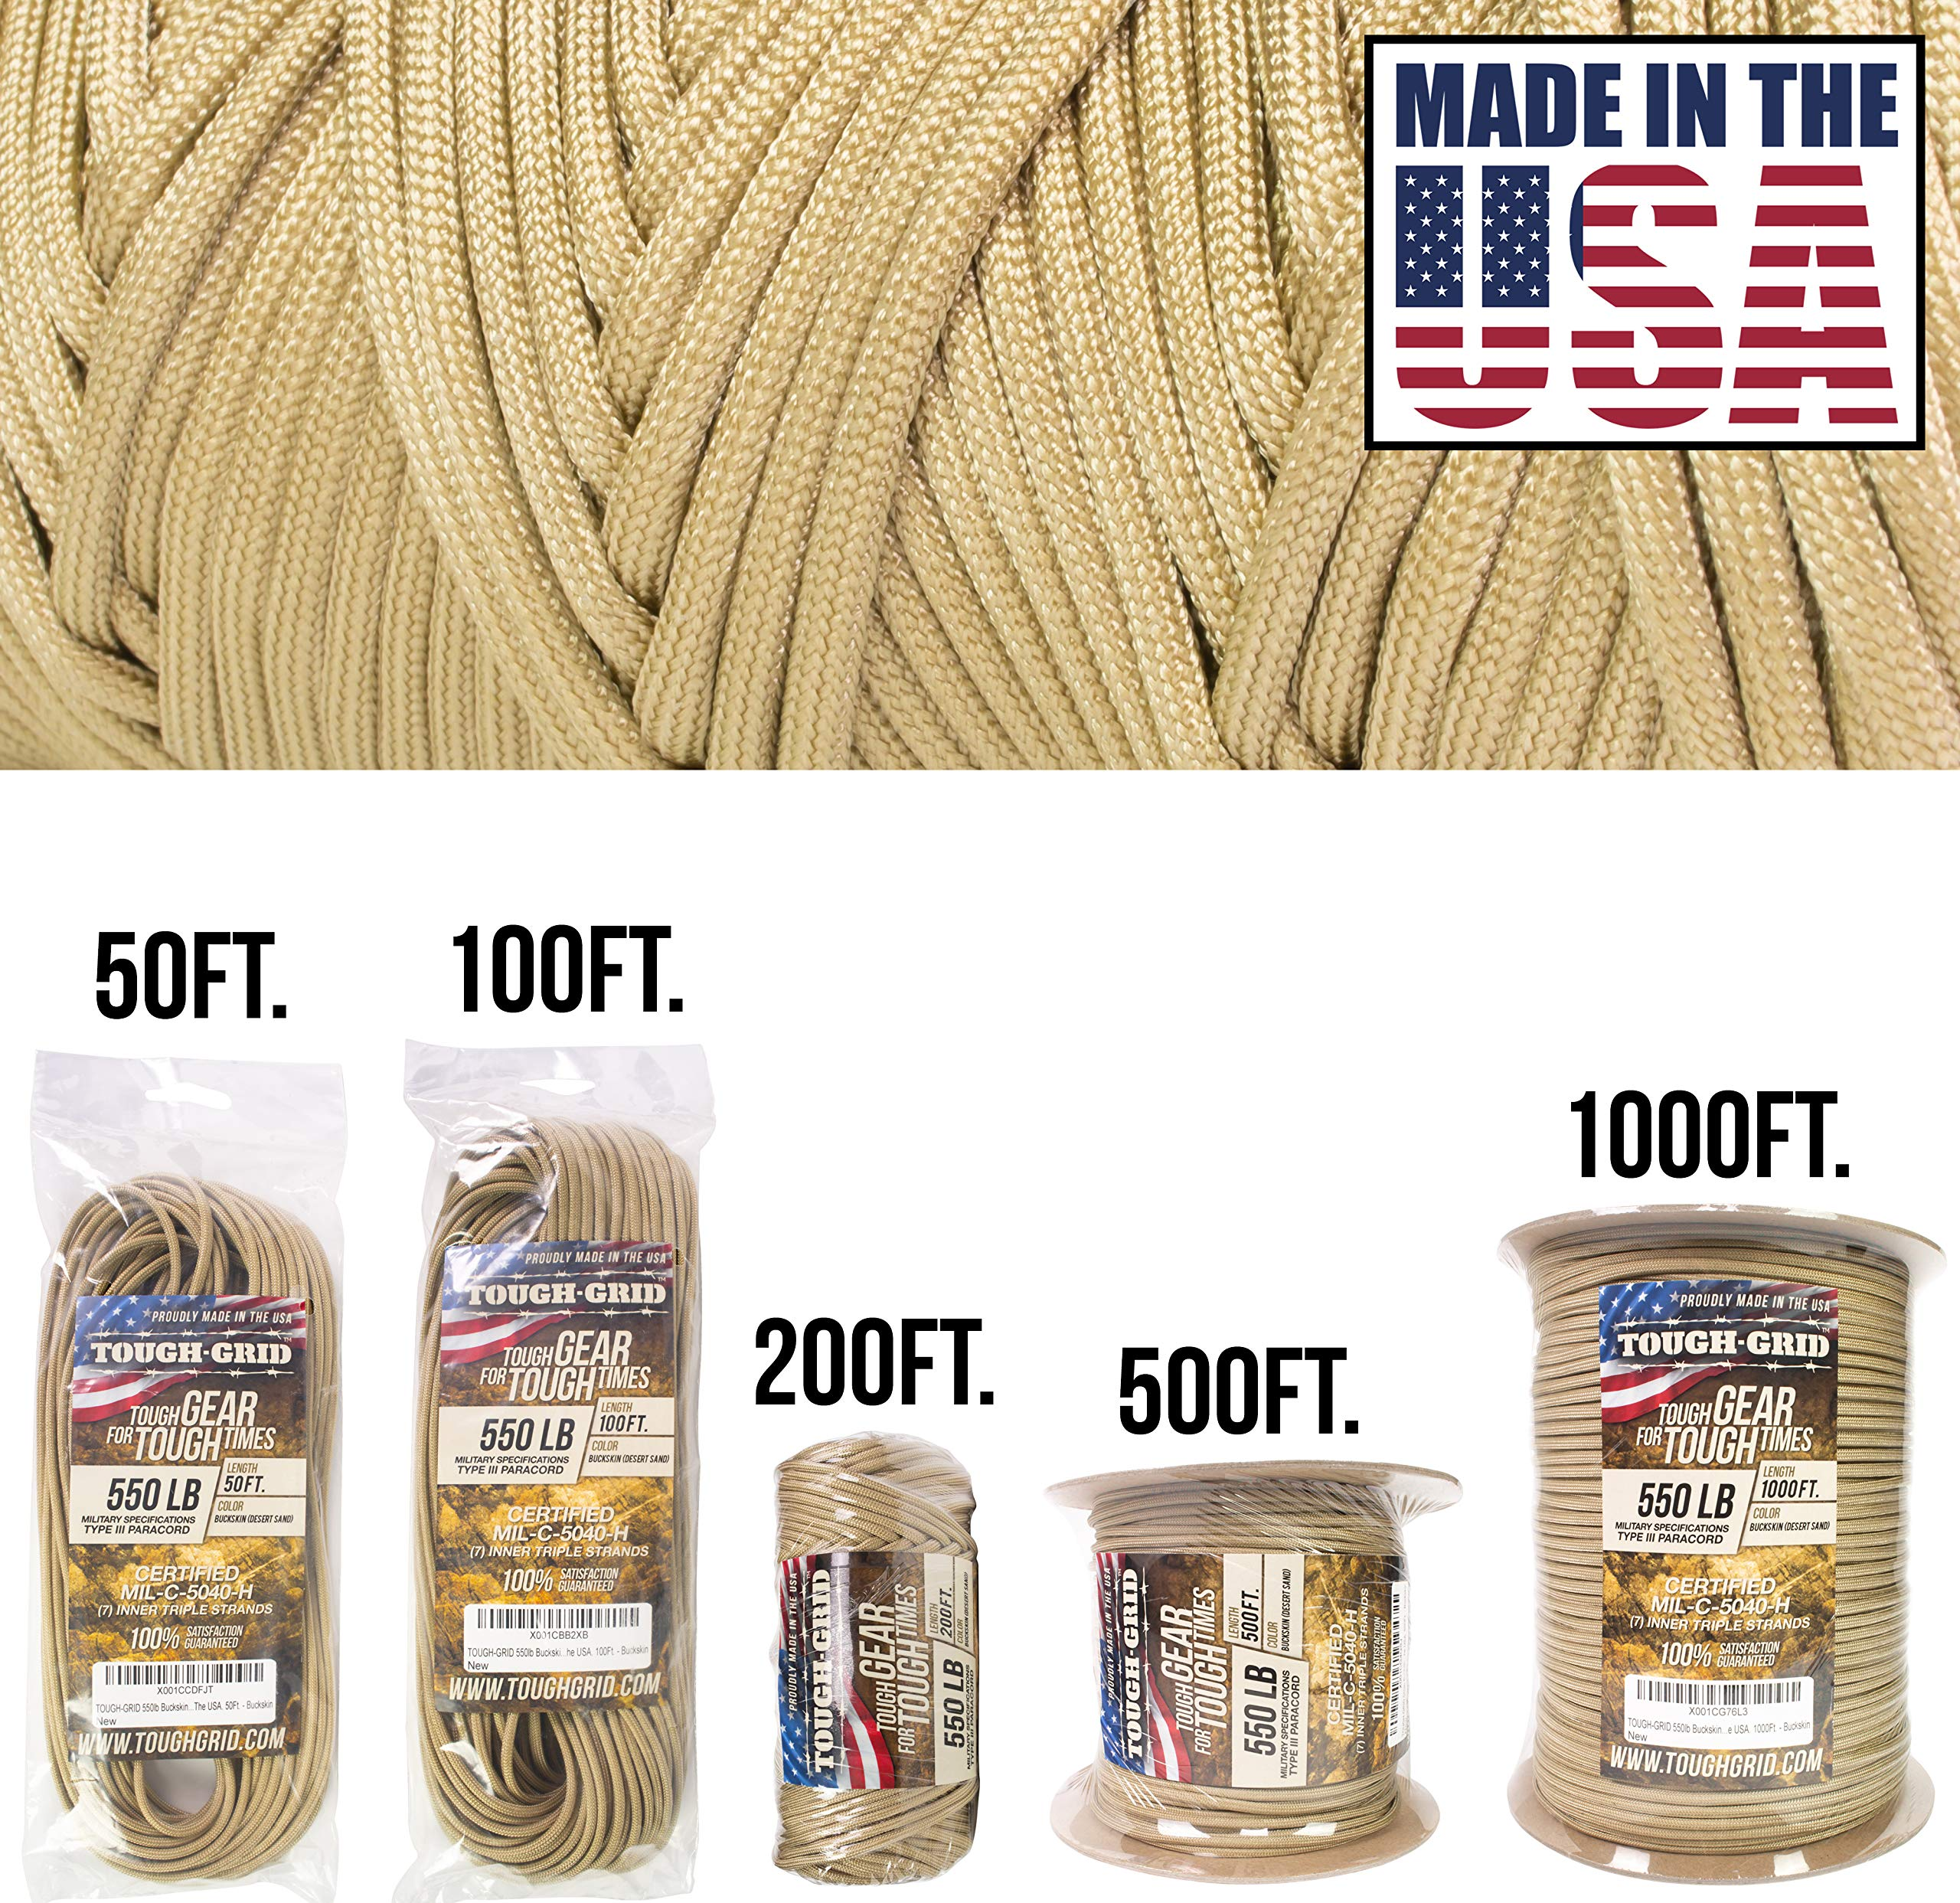 TOUGH-GRID 550lb Buckskin (Desert Sand) Paracord/Parachute Cord - 100% Nylon Genuine Mil-Spec Type III Paracord Used by The US Military - (MIL-C-5040-H) - Made in The USA. 500Ft. - Buckskin by TOUGH-GRID (Image #1)